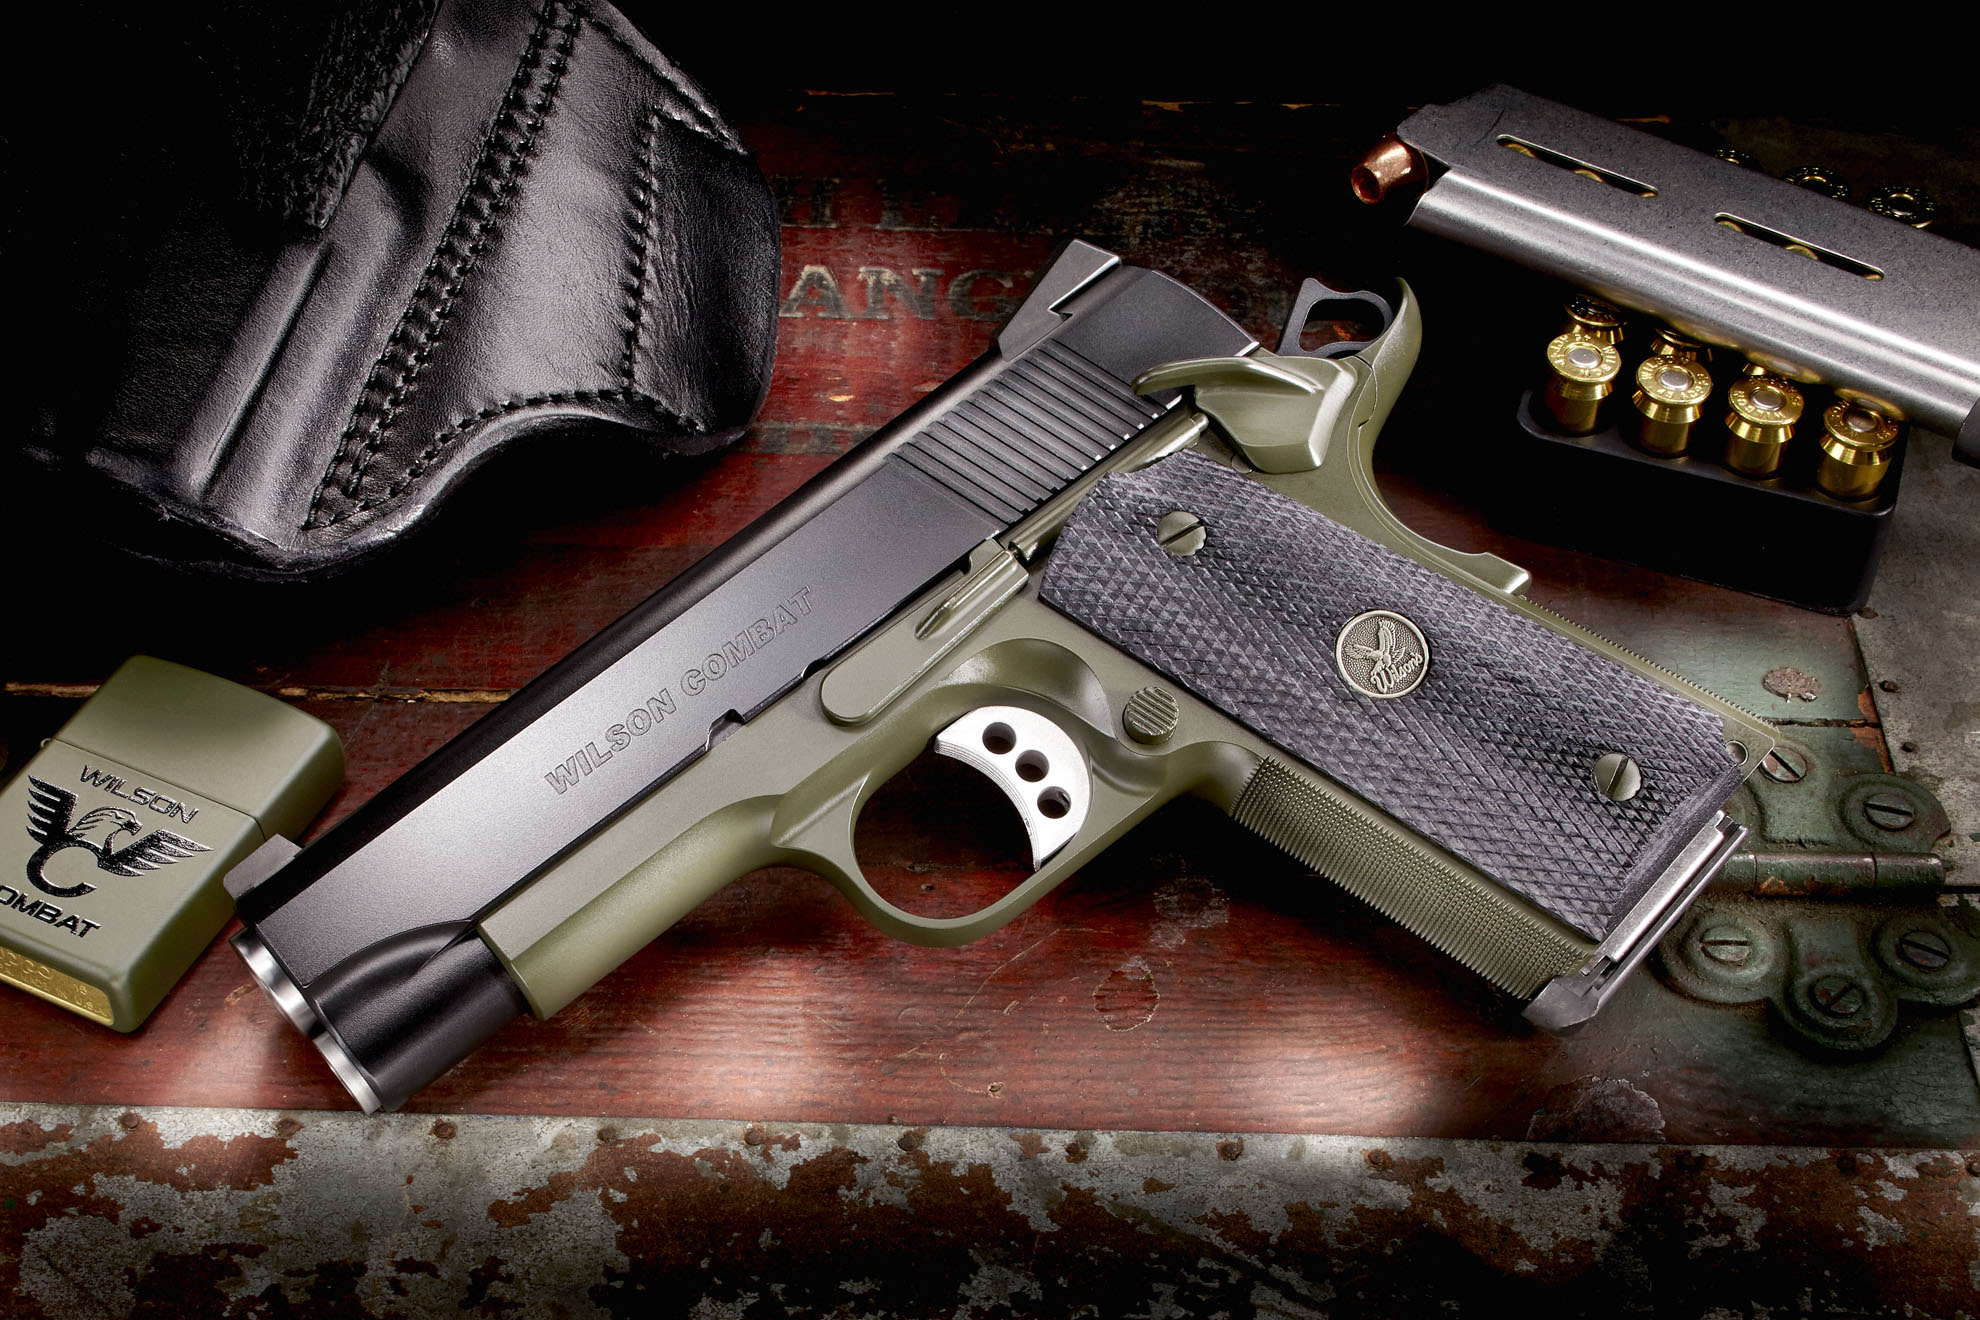 CQB Compact Green and Black15 1 copy